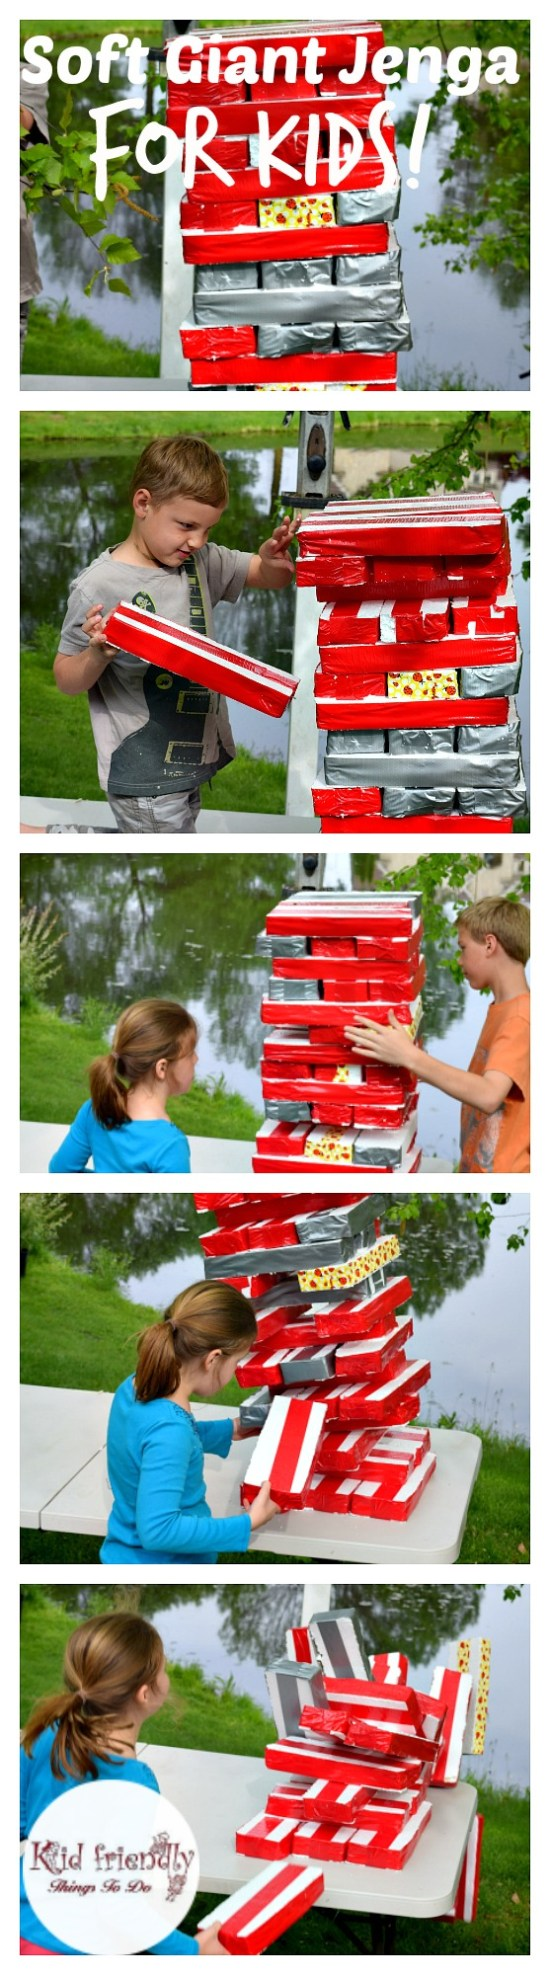 tA DIY Awesome Soft Giant Jenga Game For Kids - My kids couldn't stop playing it. For parties, anytime, summer and backyard fun! KidFriendlyThingsToDo.com